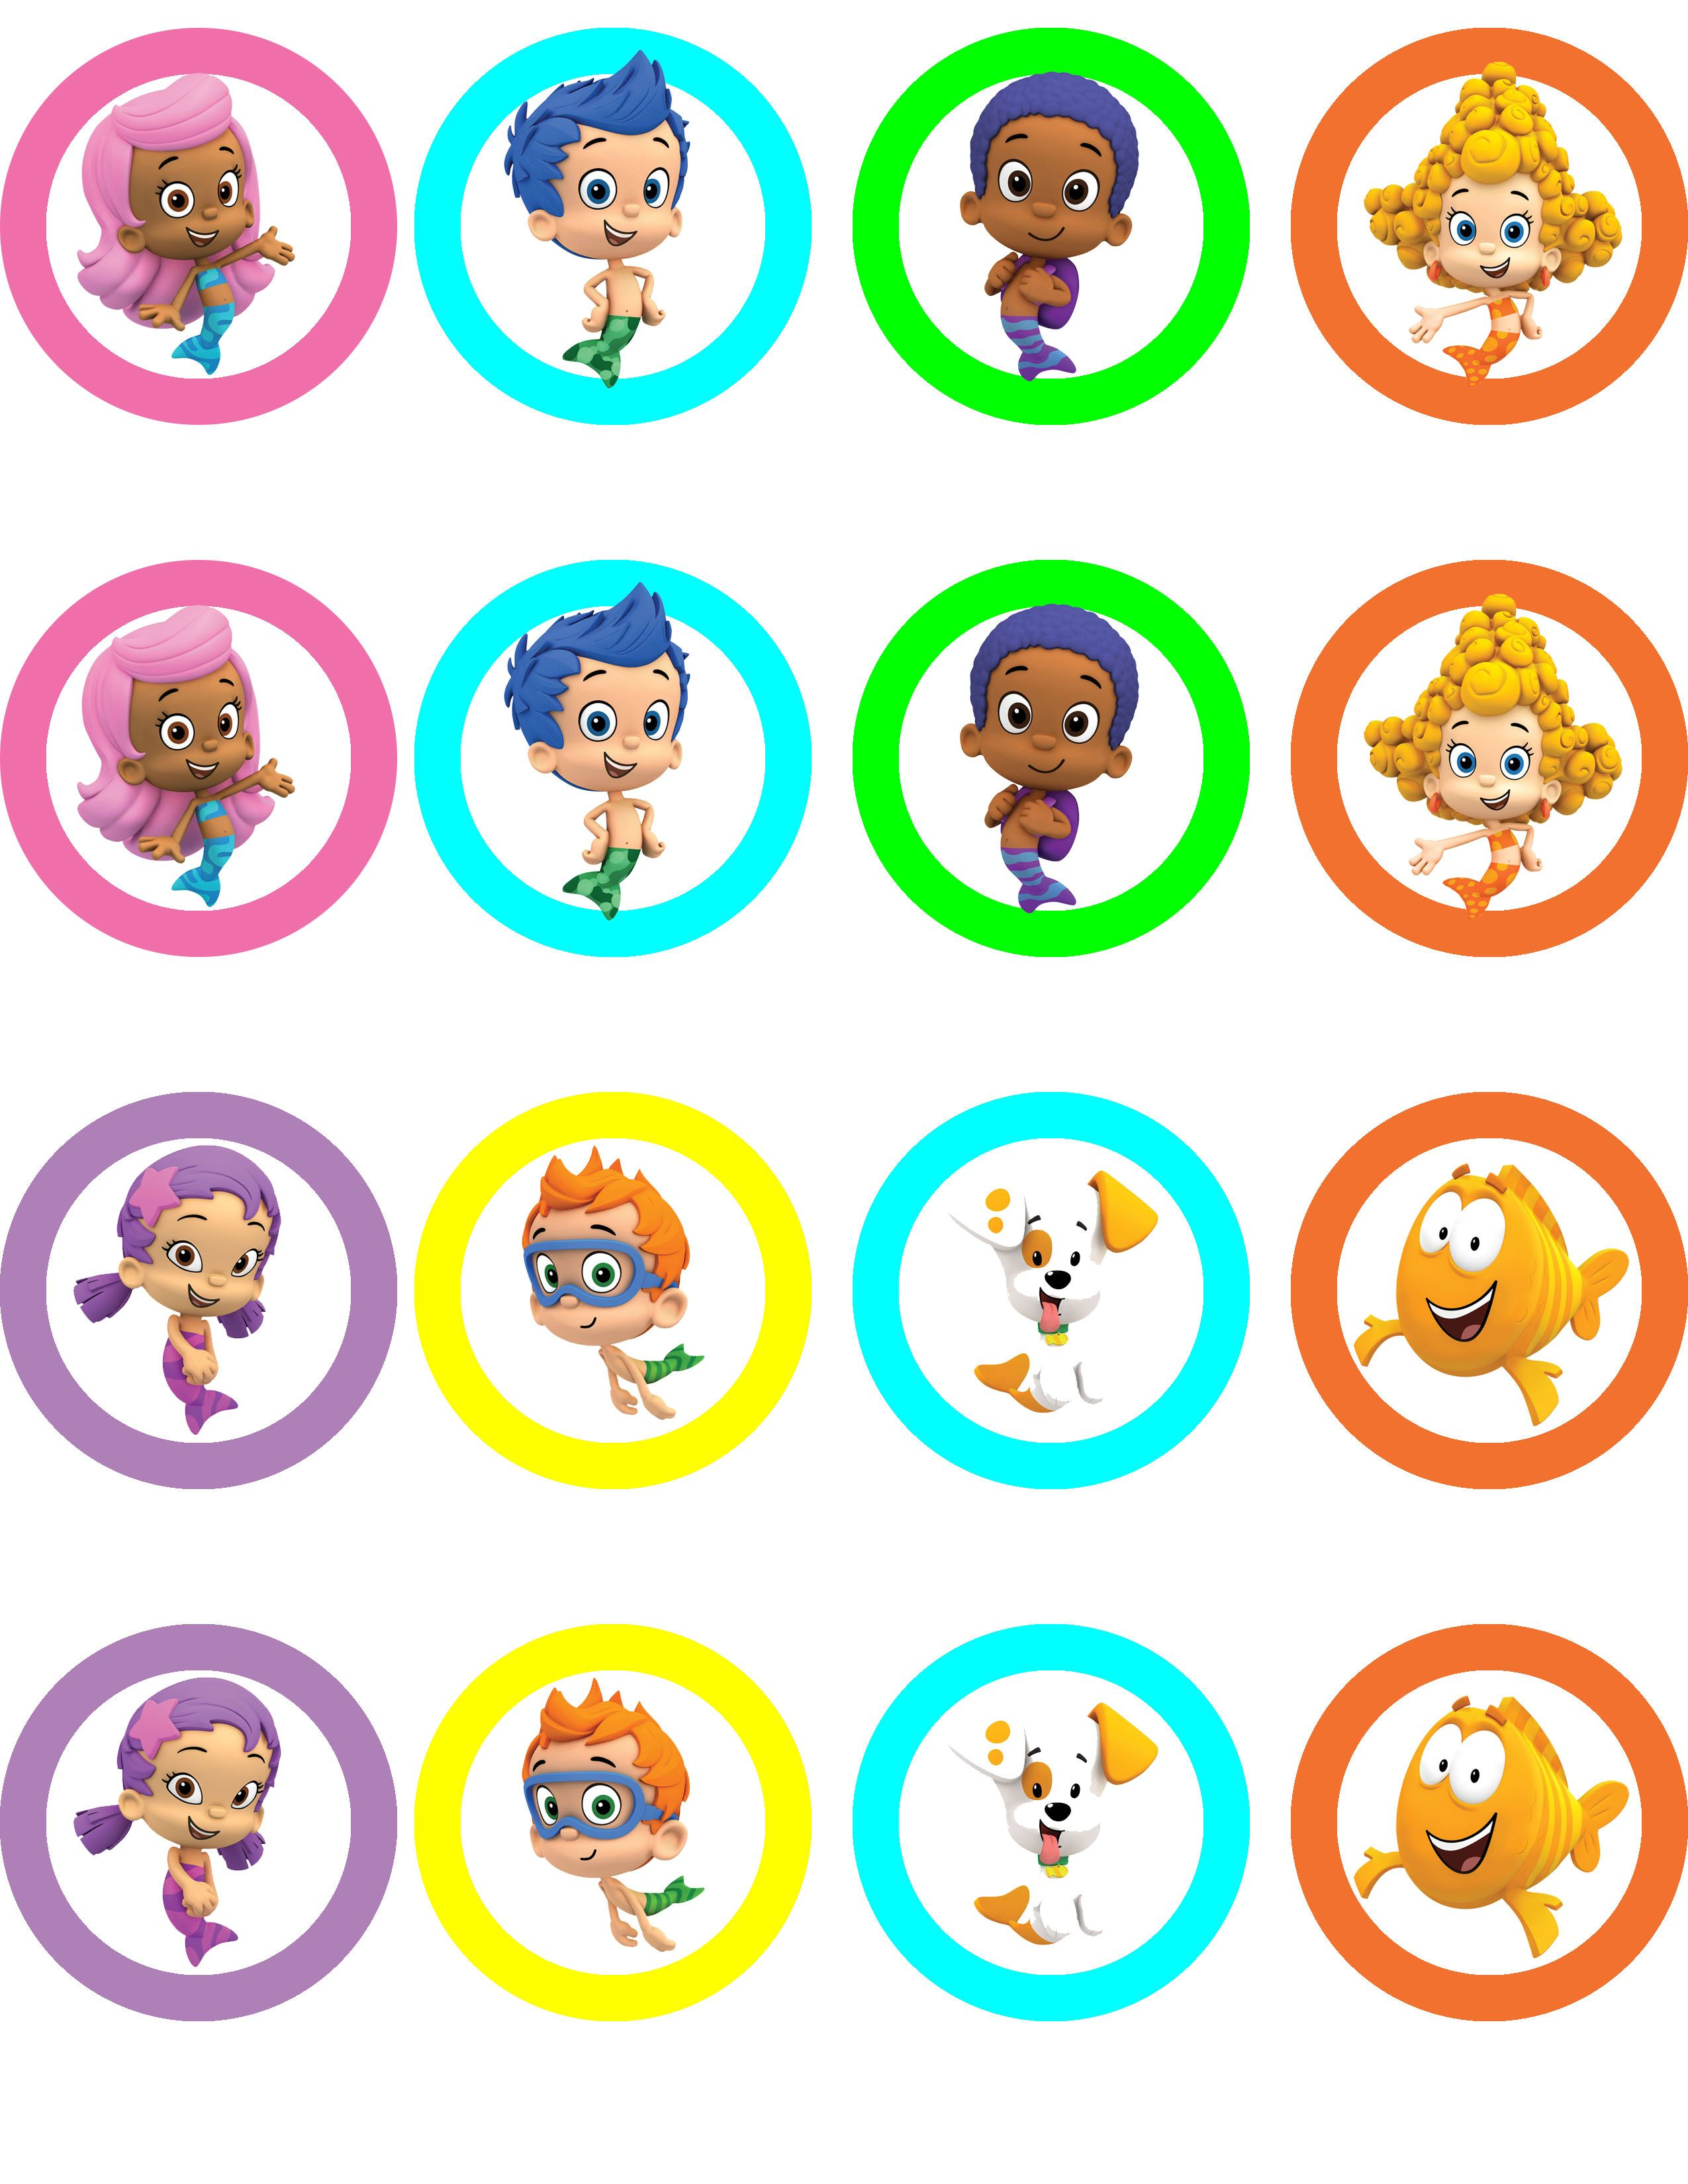 Bubble Guppies Printables Page 1 Can Be Used As Stickers Table Decor Cake Toppers Bubble Guppies Birthday Party Bubble Guppies Party Bubble Guppies Birthday